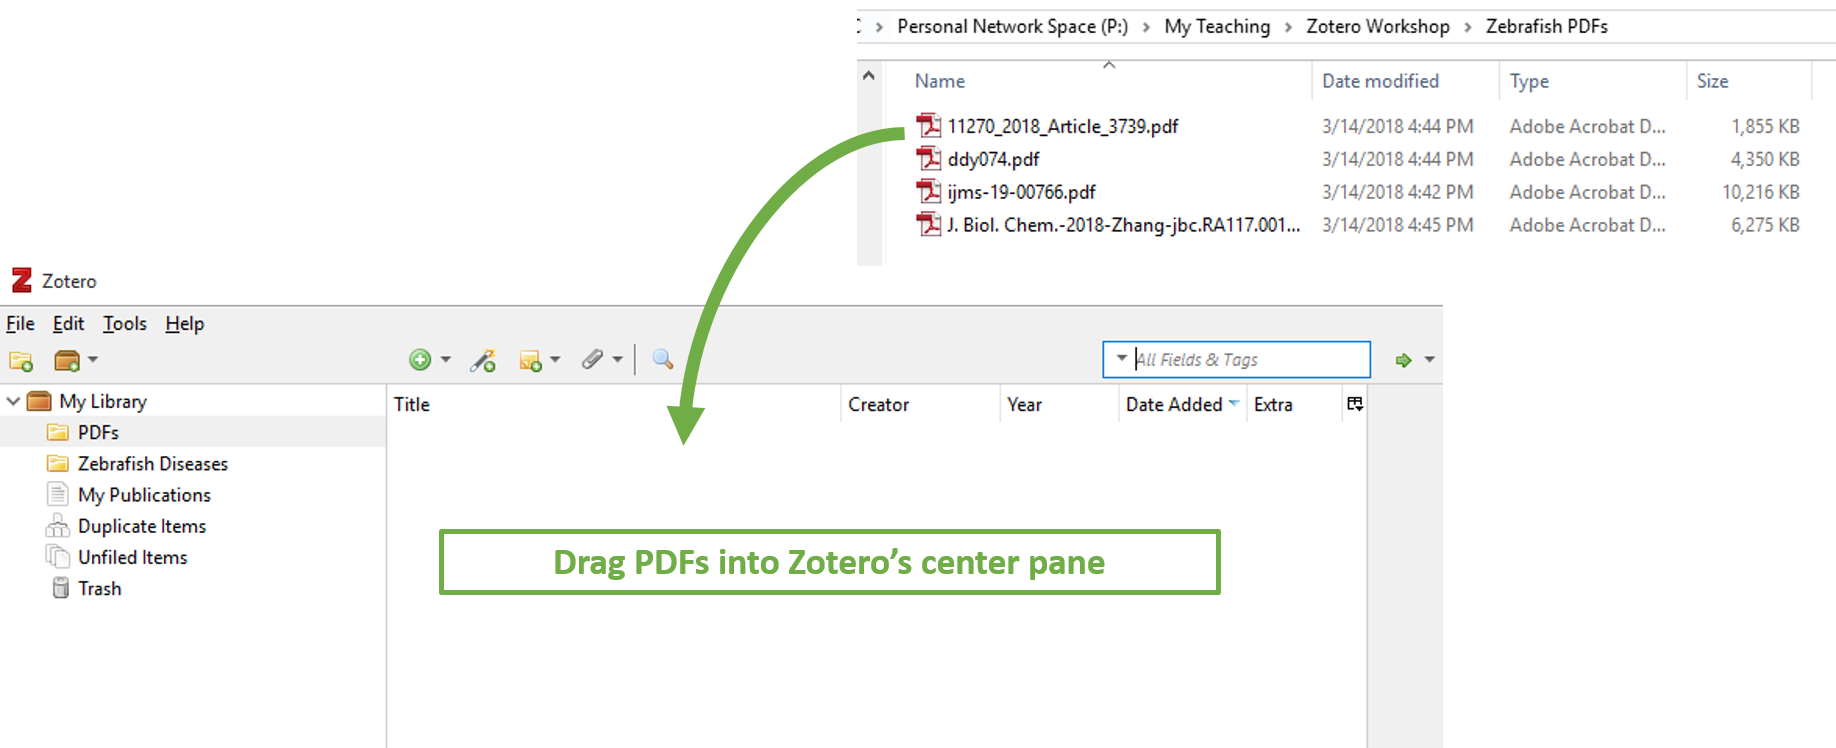 Drag PDFs to Zotero center pane